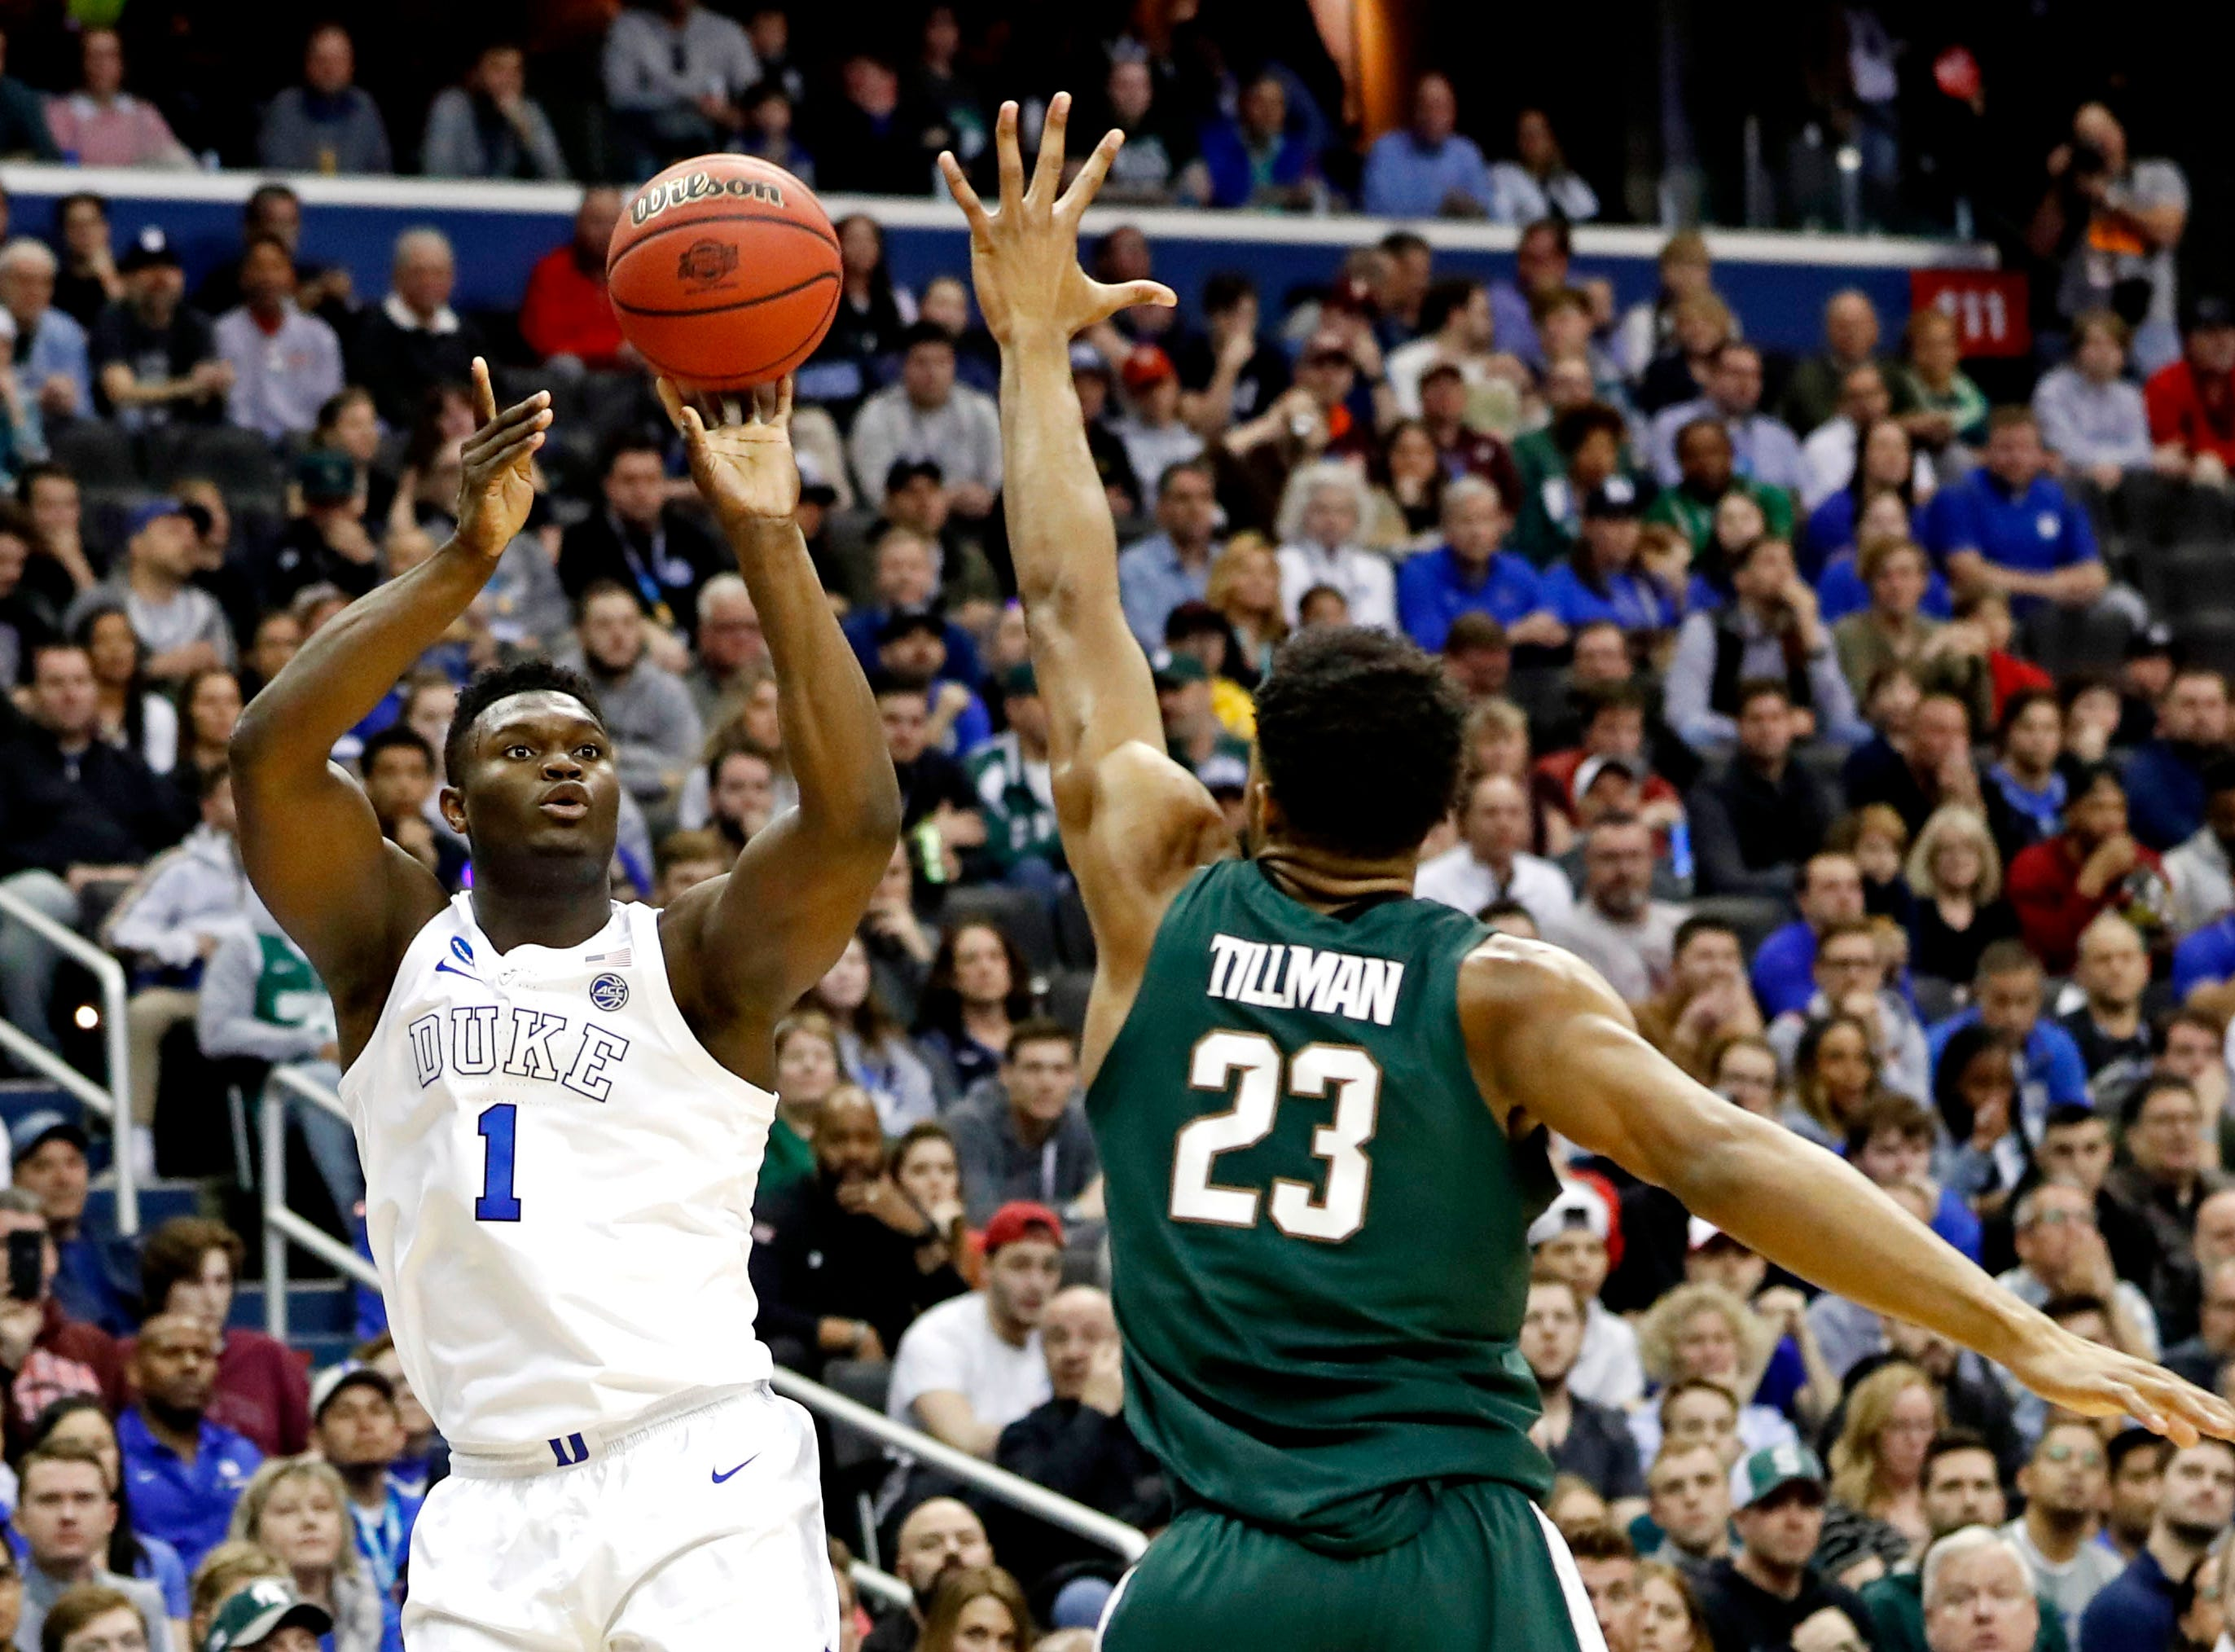 Mar 31, 2019; Washington, DC, USA; Duke Blue Devils forward Zion Williamson (1) shoots the ball against Michigan State Spartans forward Xavier Tillman (23) during the second half in the championship game of the east regional of the 2019 NCAA Tournament at Capital One Arena. Mandatory Credit: Geoff Burke-USA TODAY Sports